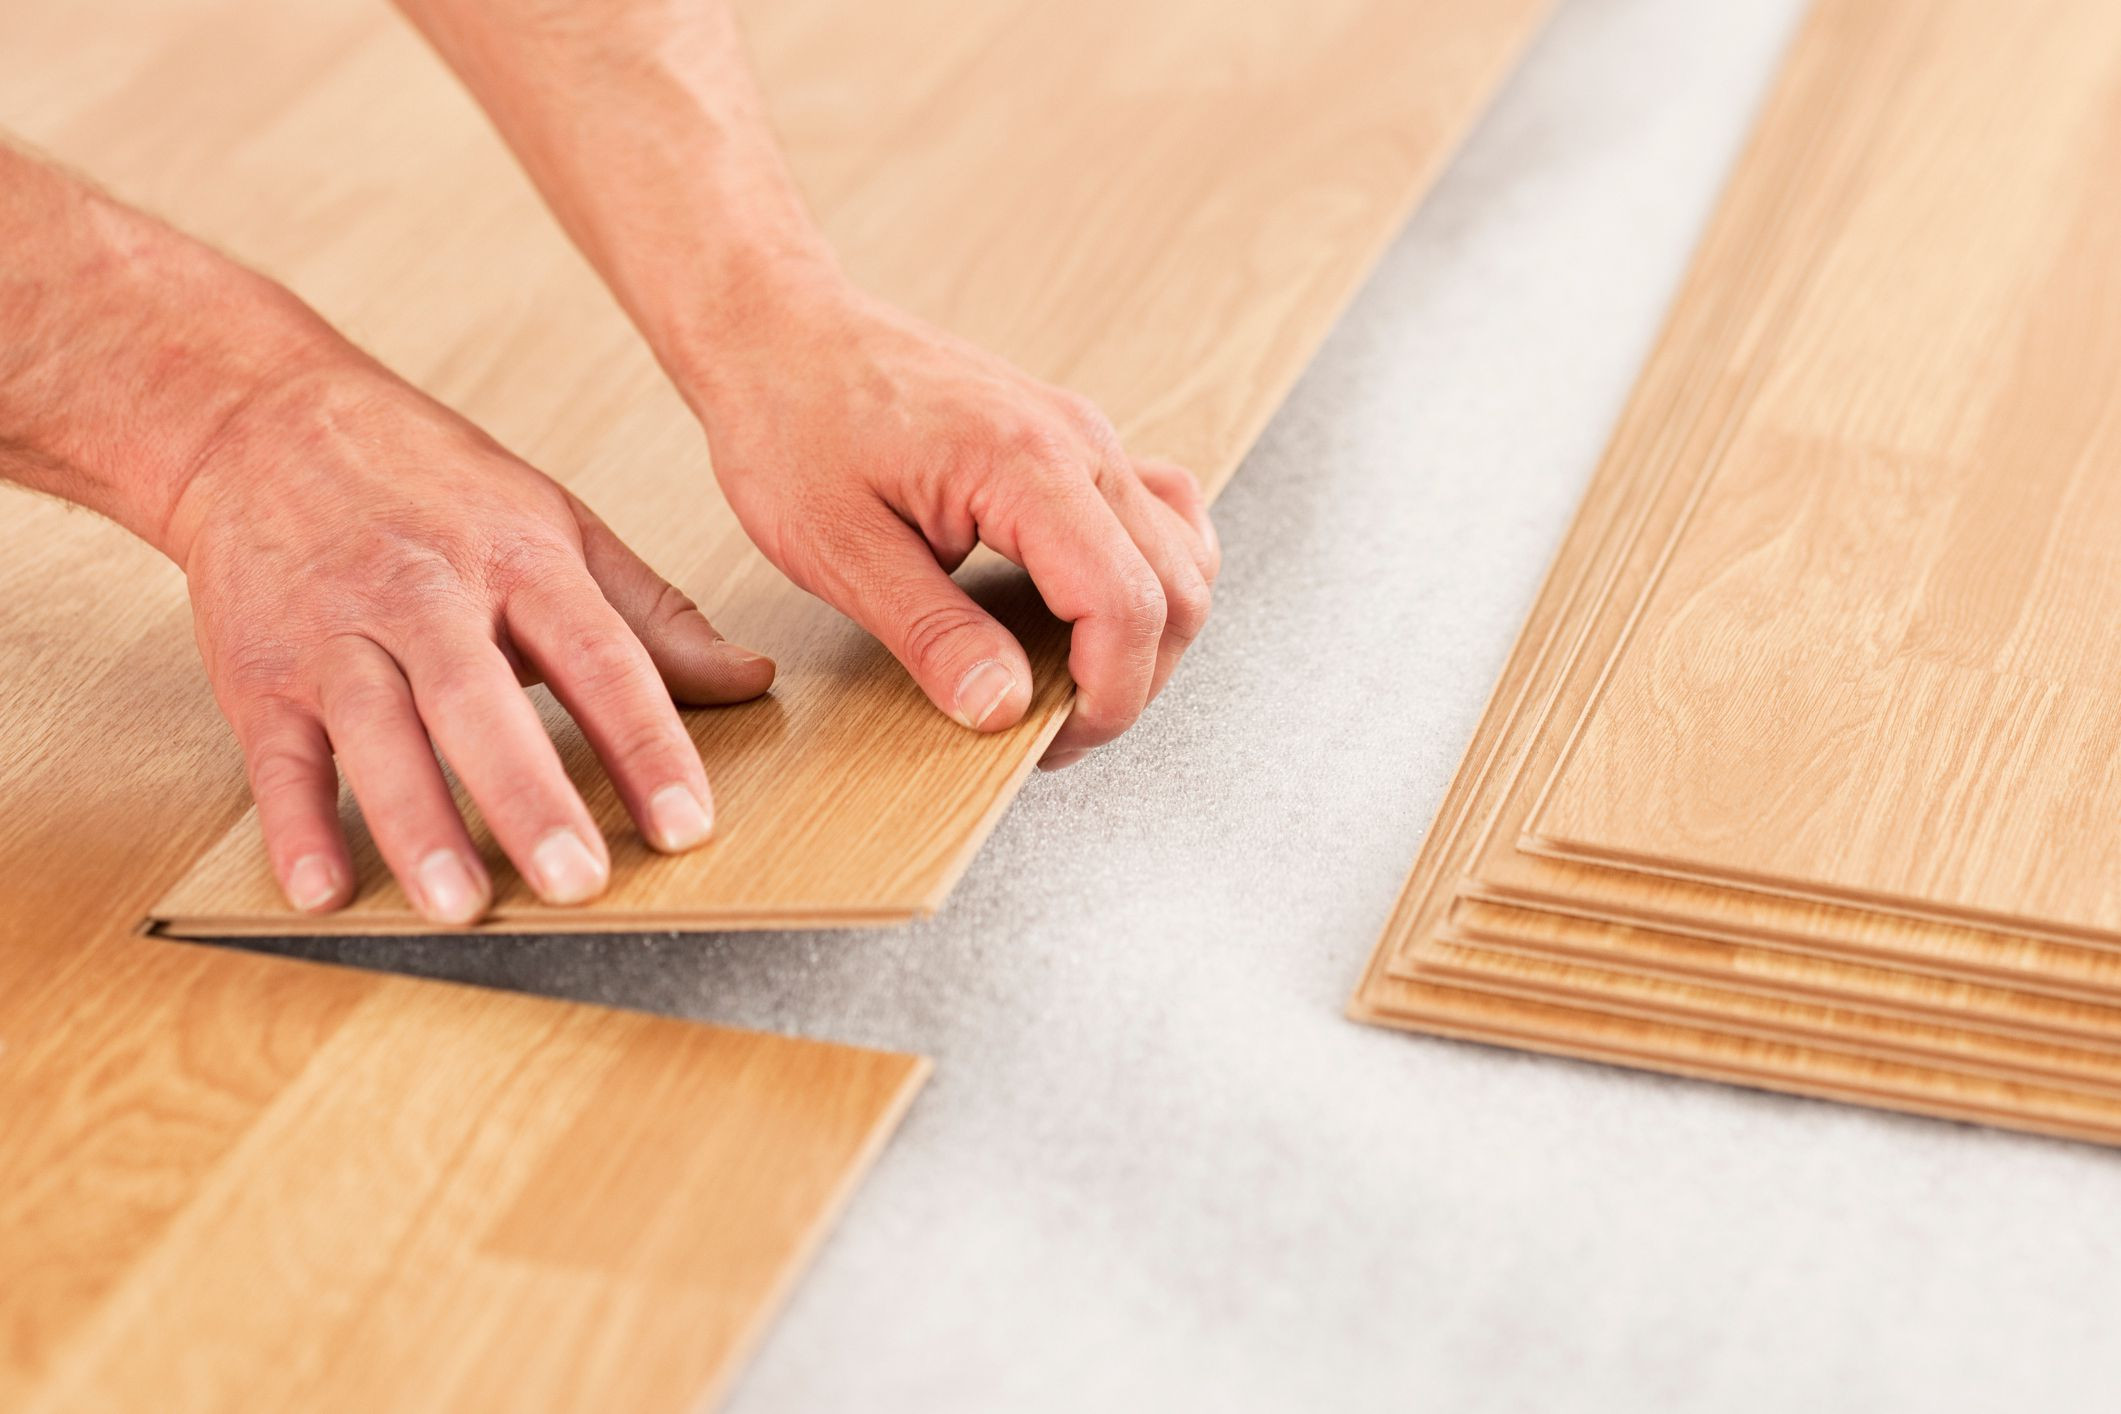 gaps in hardwood floor after installation of laminate underlayment pros and cons regarding laminate floor install gettyimages 154961561 588816495f9b58bdb3da1a02